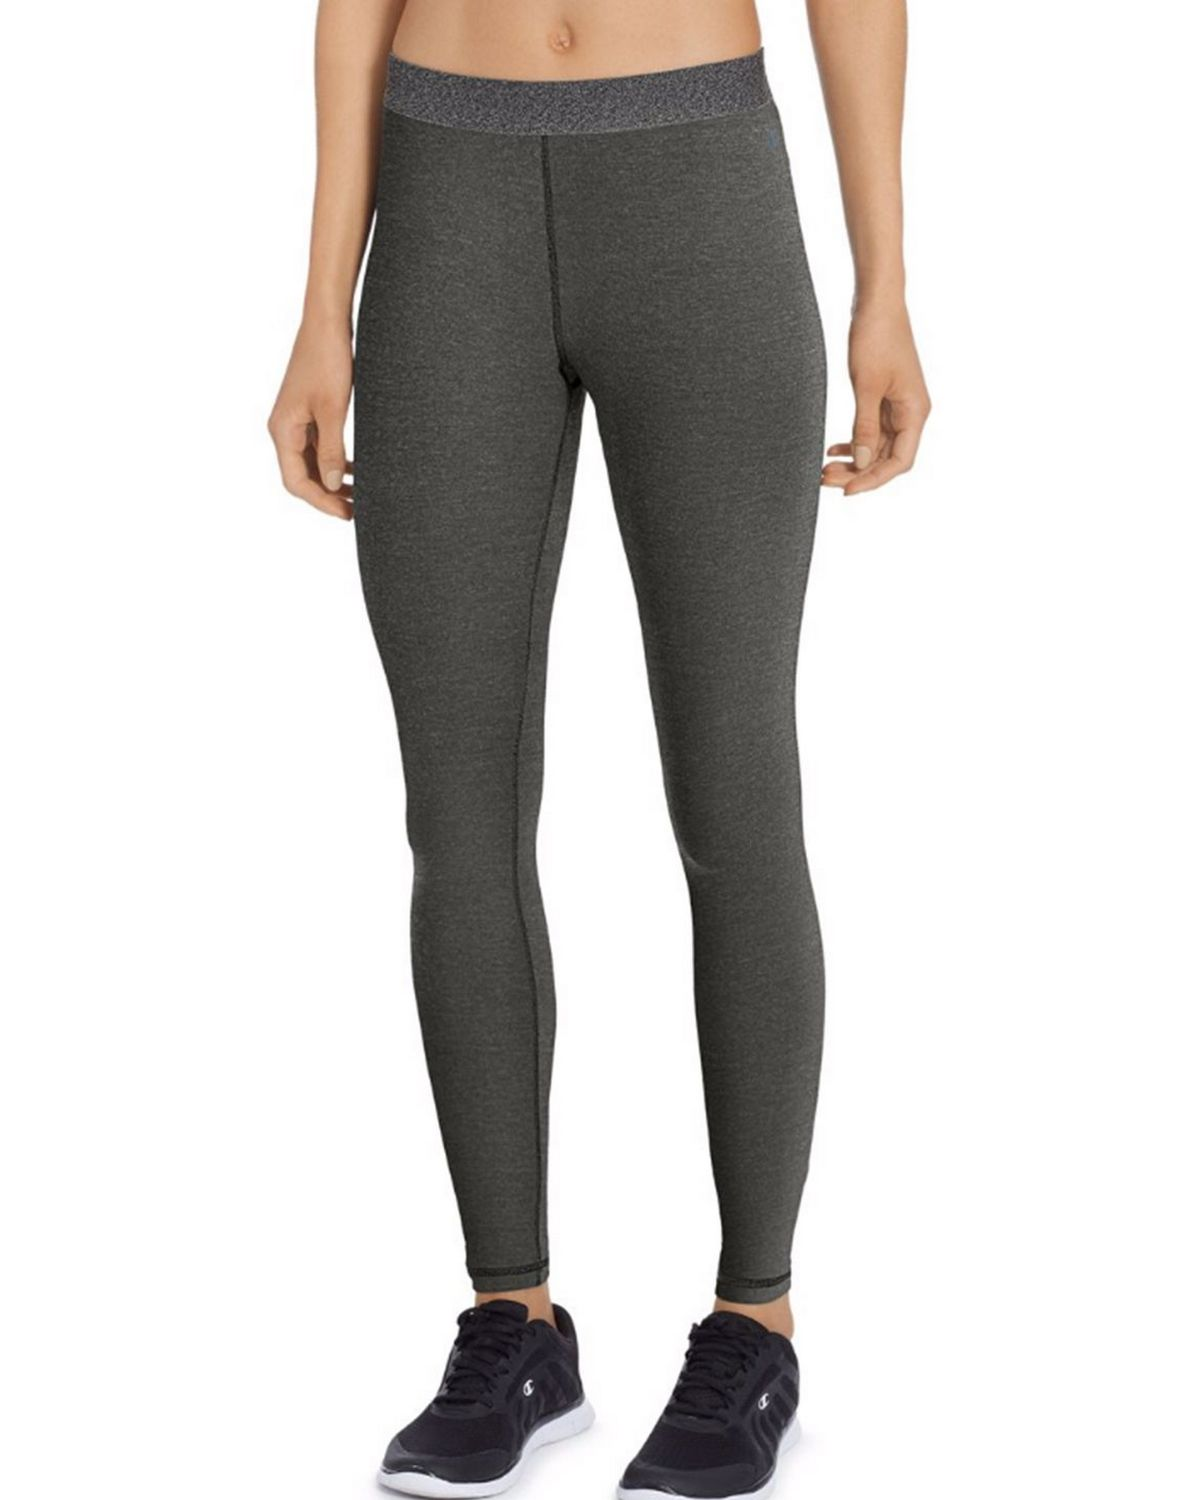 Champion M50071 Everyday Tights - Granite Heather - S M50071